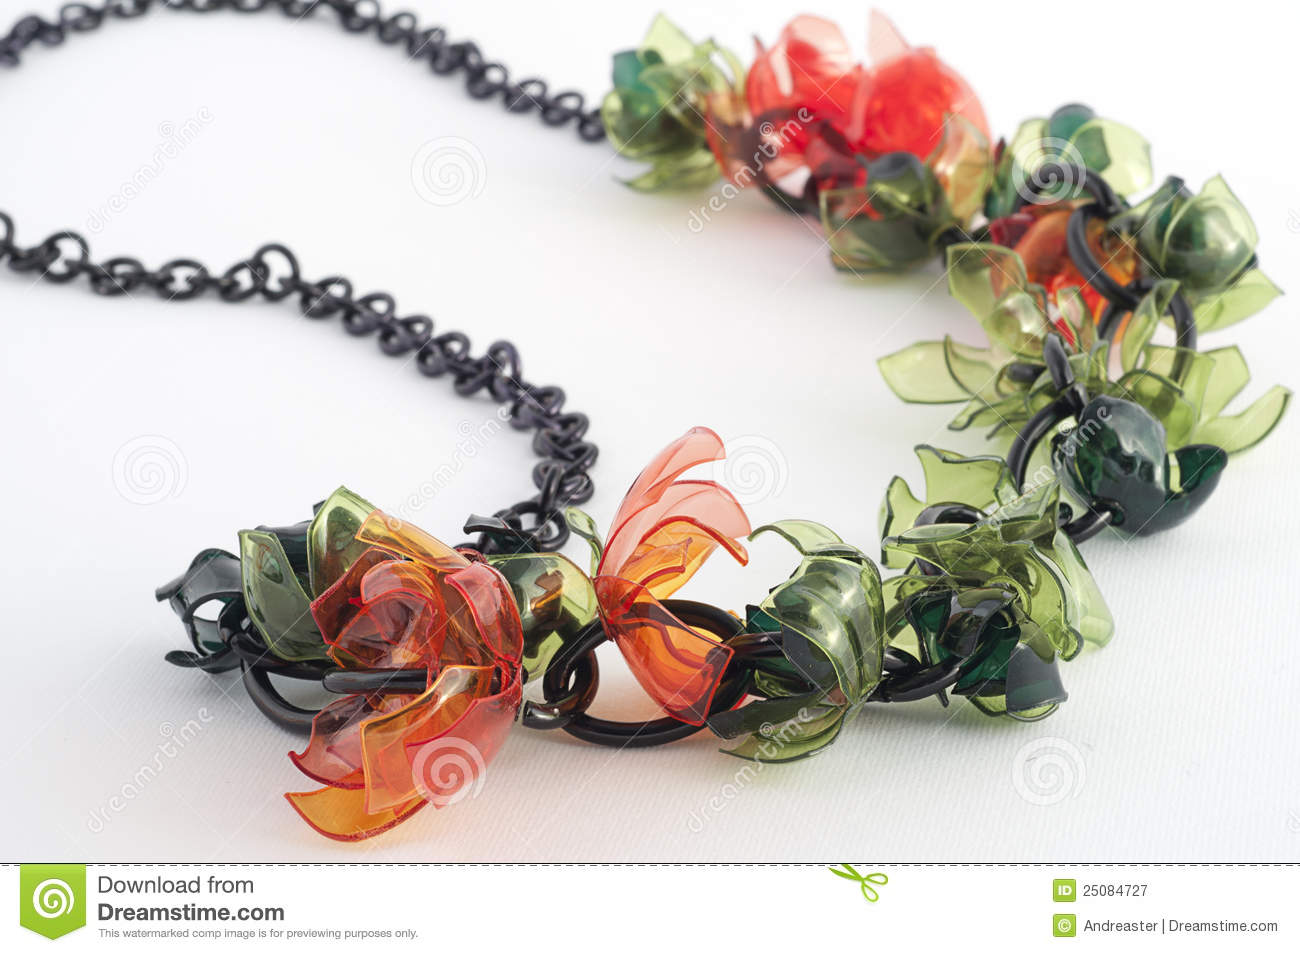 Ecojewelry Necklace From Recycled Plastic Bottles Royalty